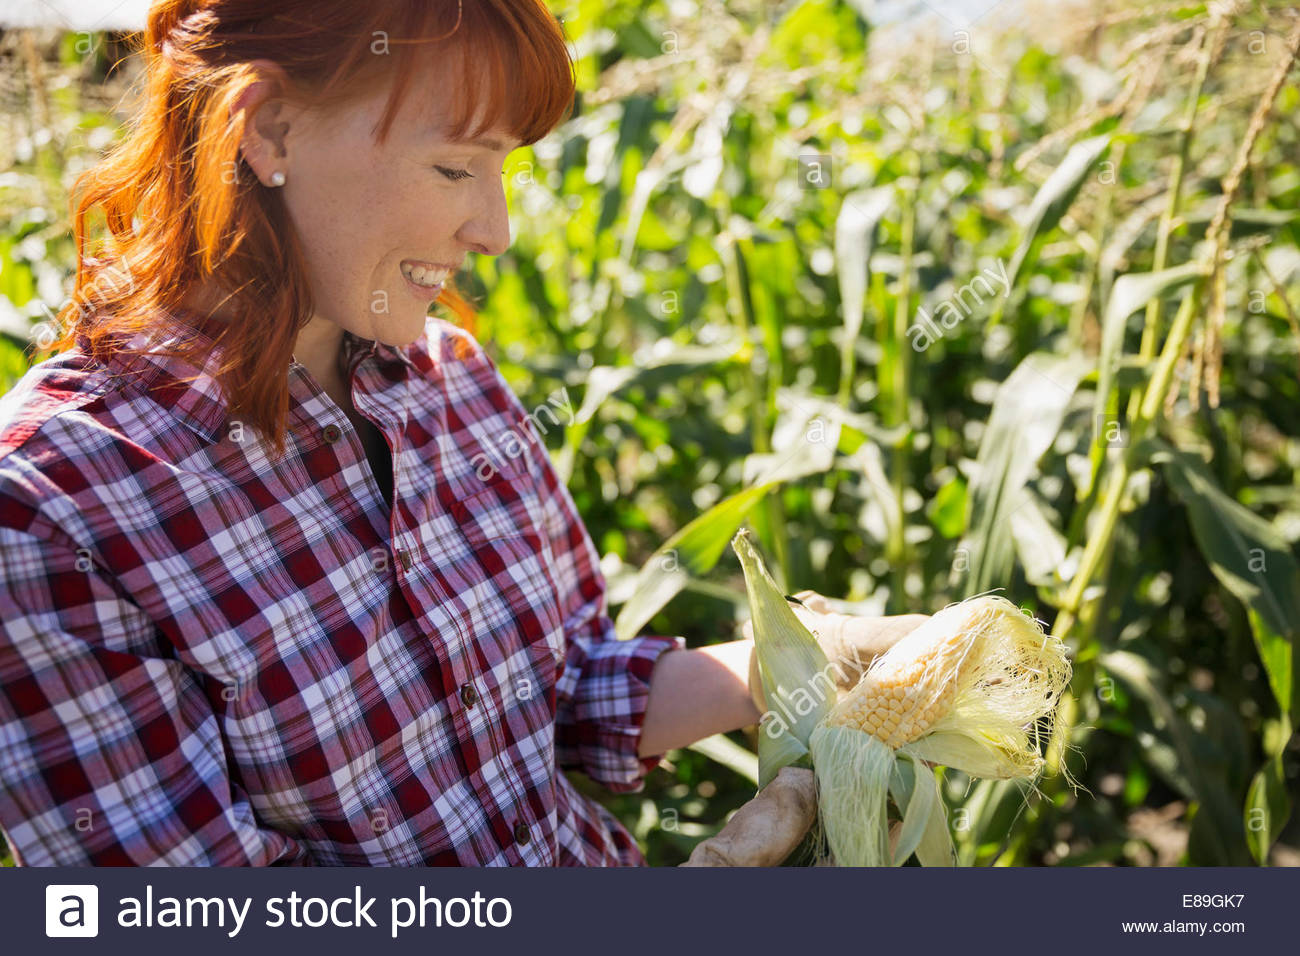 Woman checking corn in crop - Stock Image